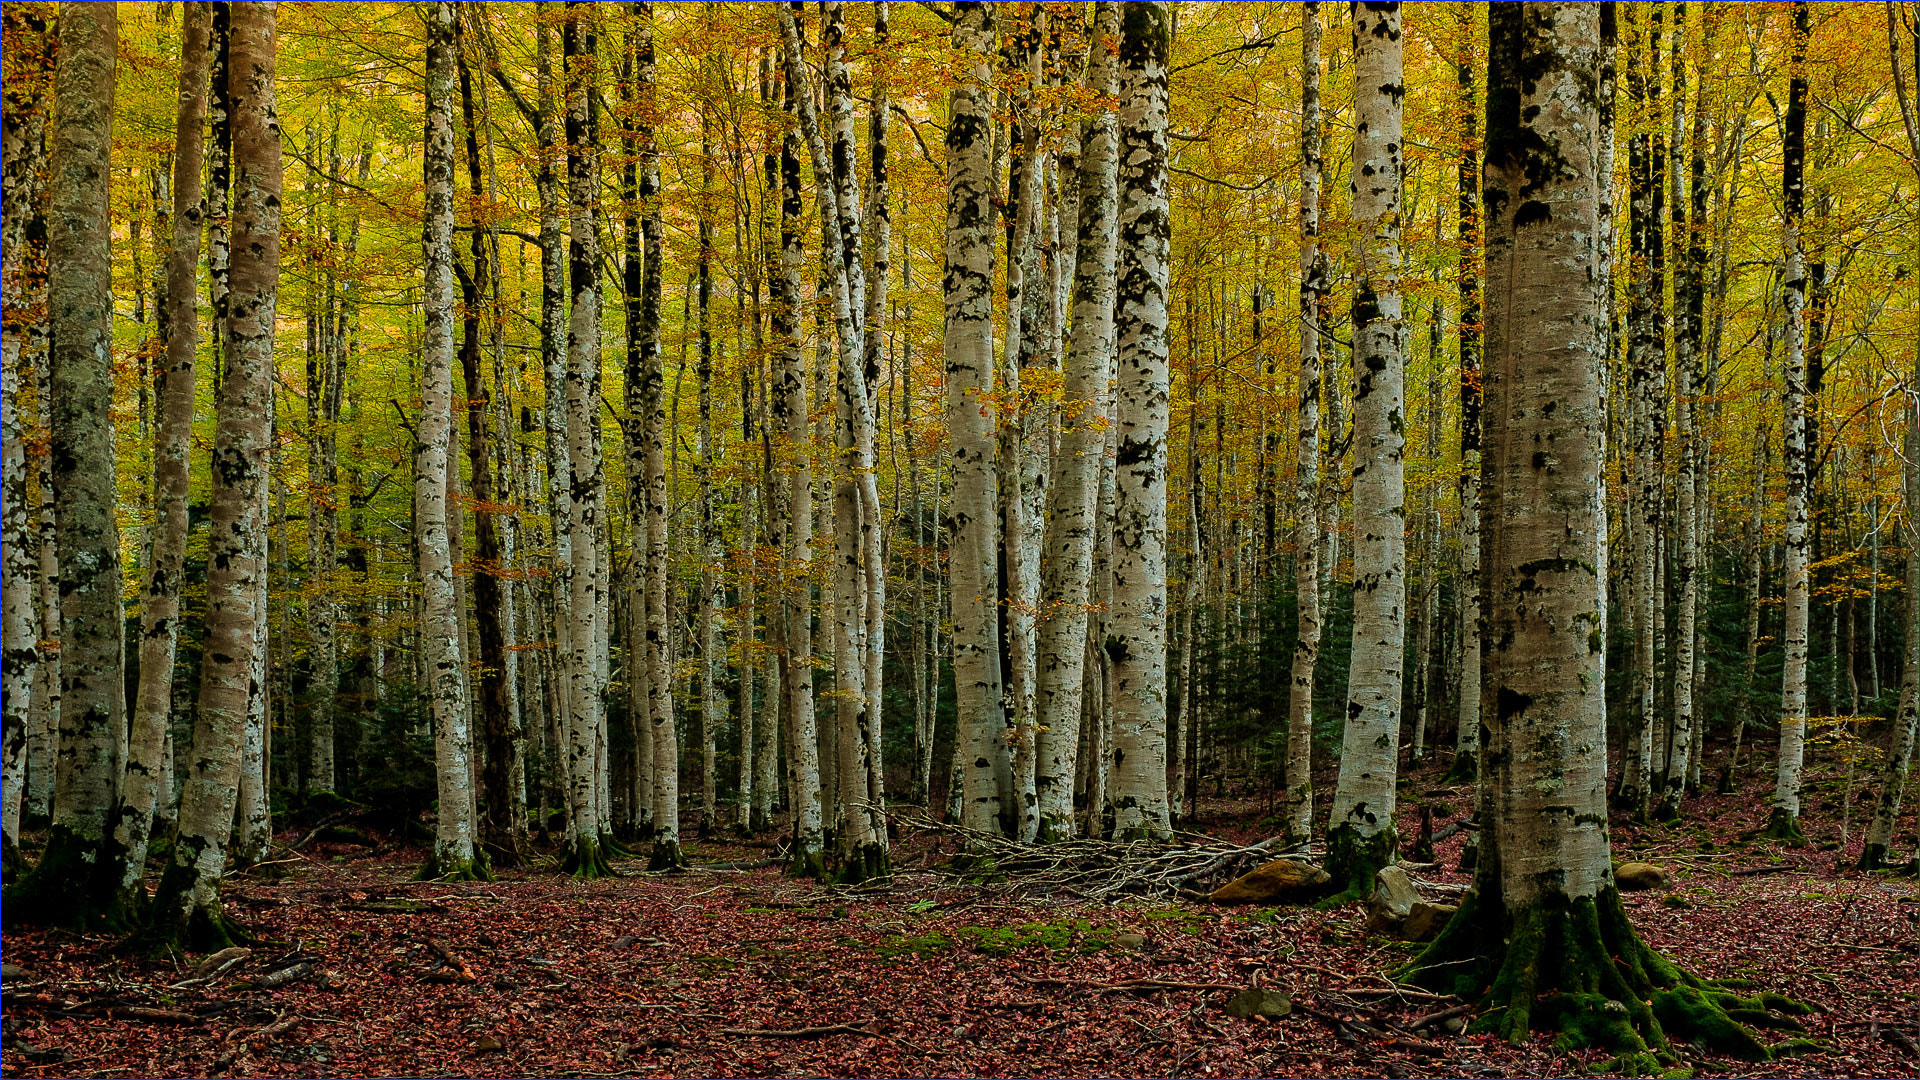 Photograph Otoño IV (Huesca) by Ferran Cartagena  on 500px